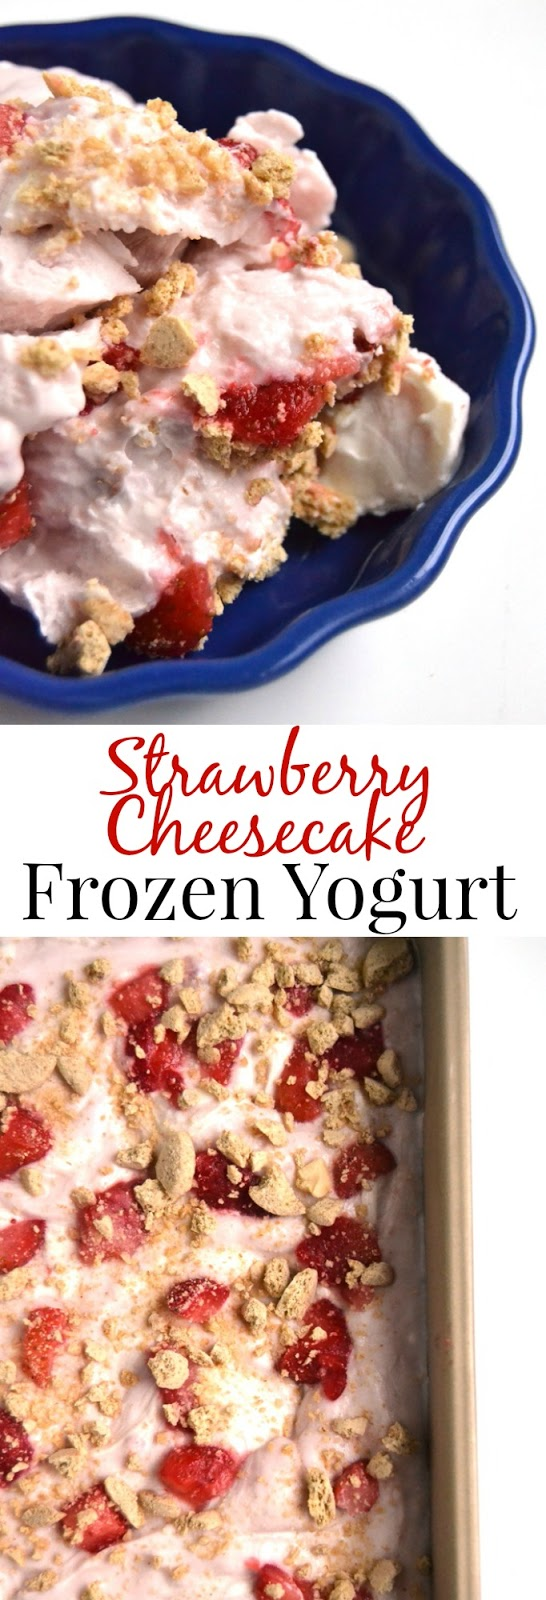 Strawberry Cheesecake Frozen Yogurt is a healthier treat with just 5 ingredients, is packed full of protein with Greek yogurt and tastes like an indulgent dessert with rich cream cheese, strawberries and graham crackers. www.nutritionistreviews.com